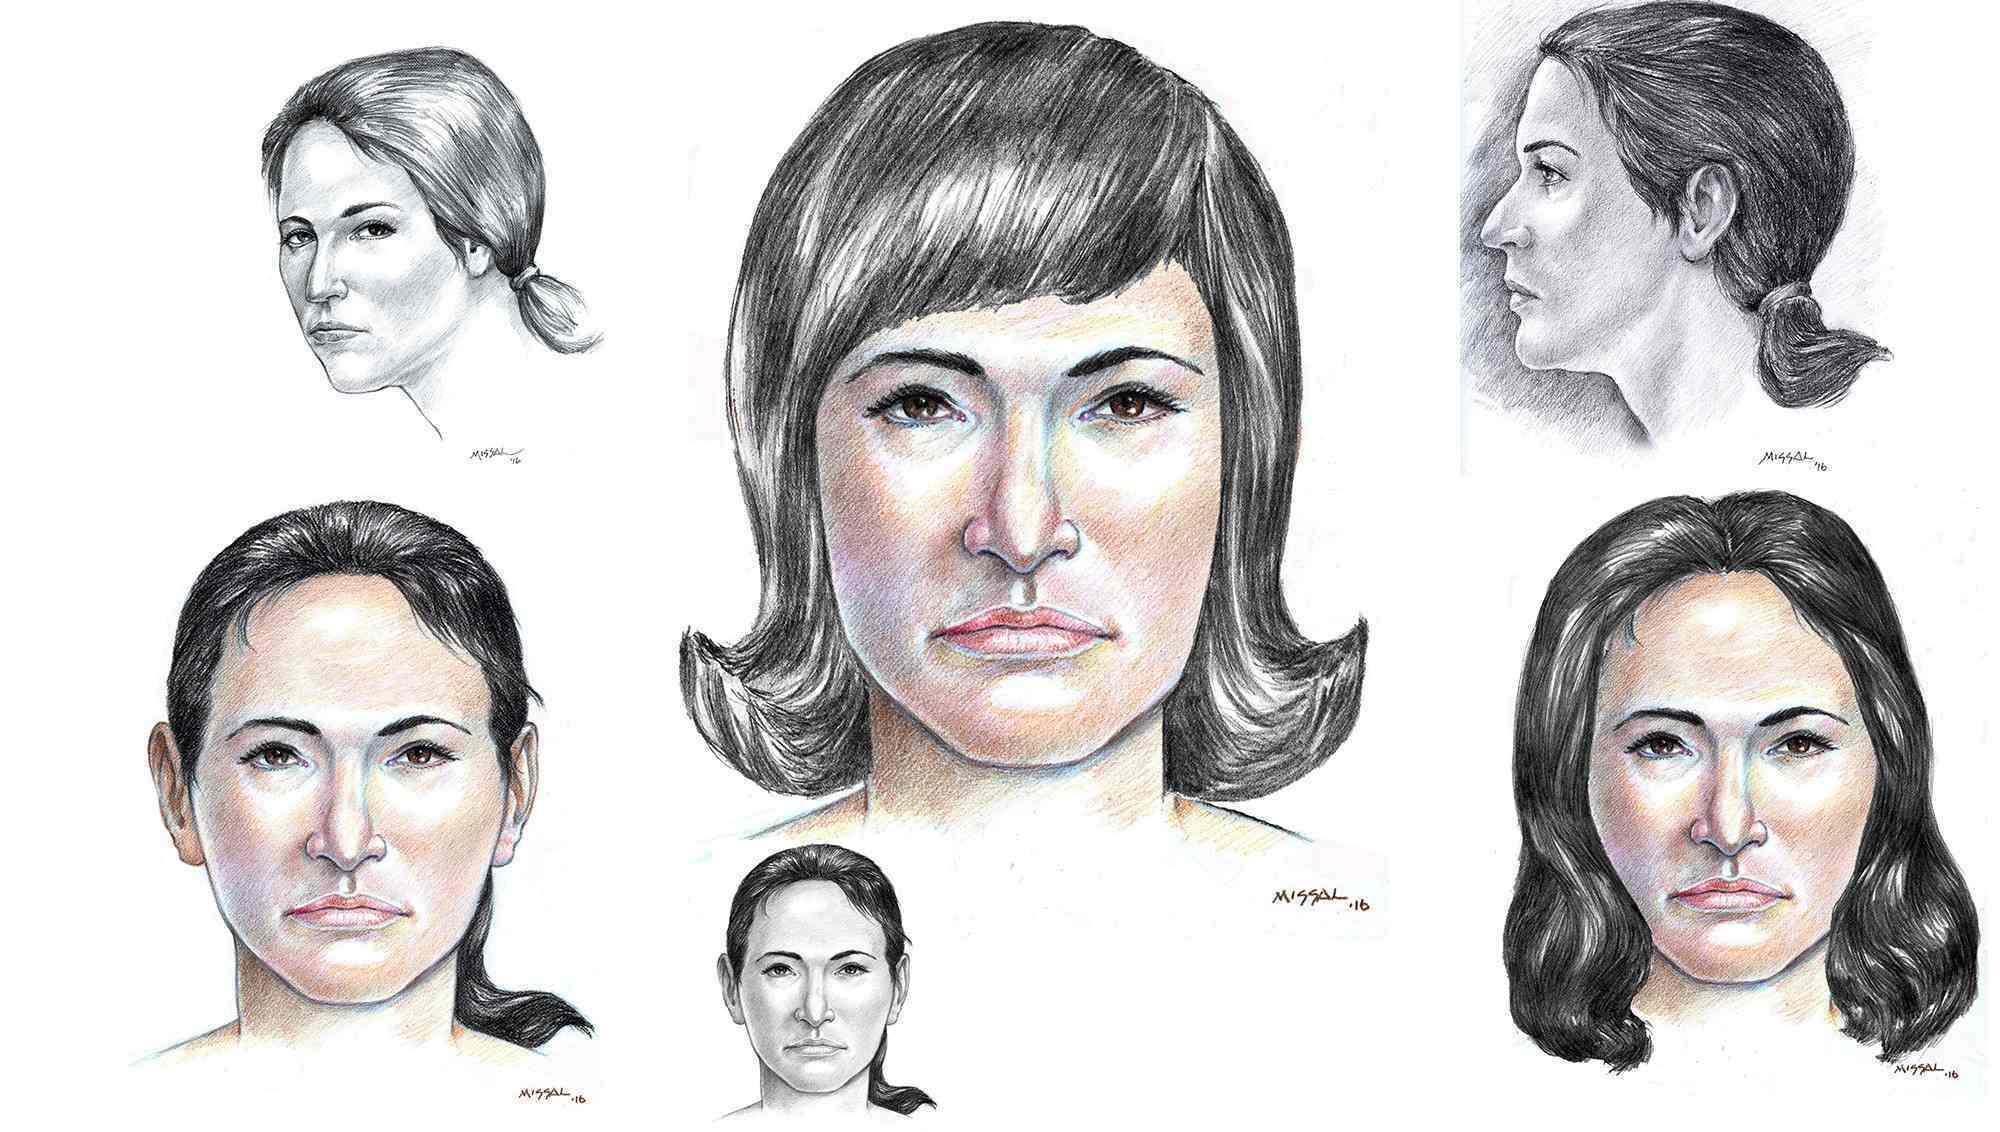 The Isdal Woman: Norway's most famous mystery death still haunts the world 7